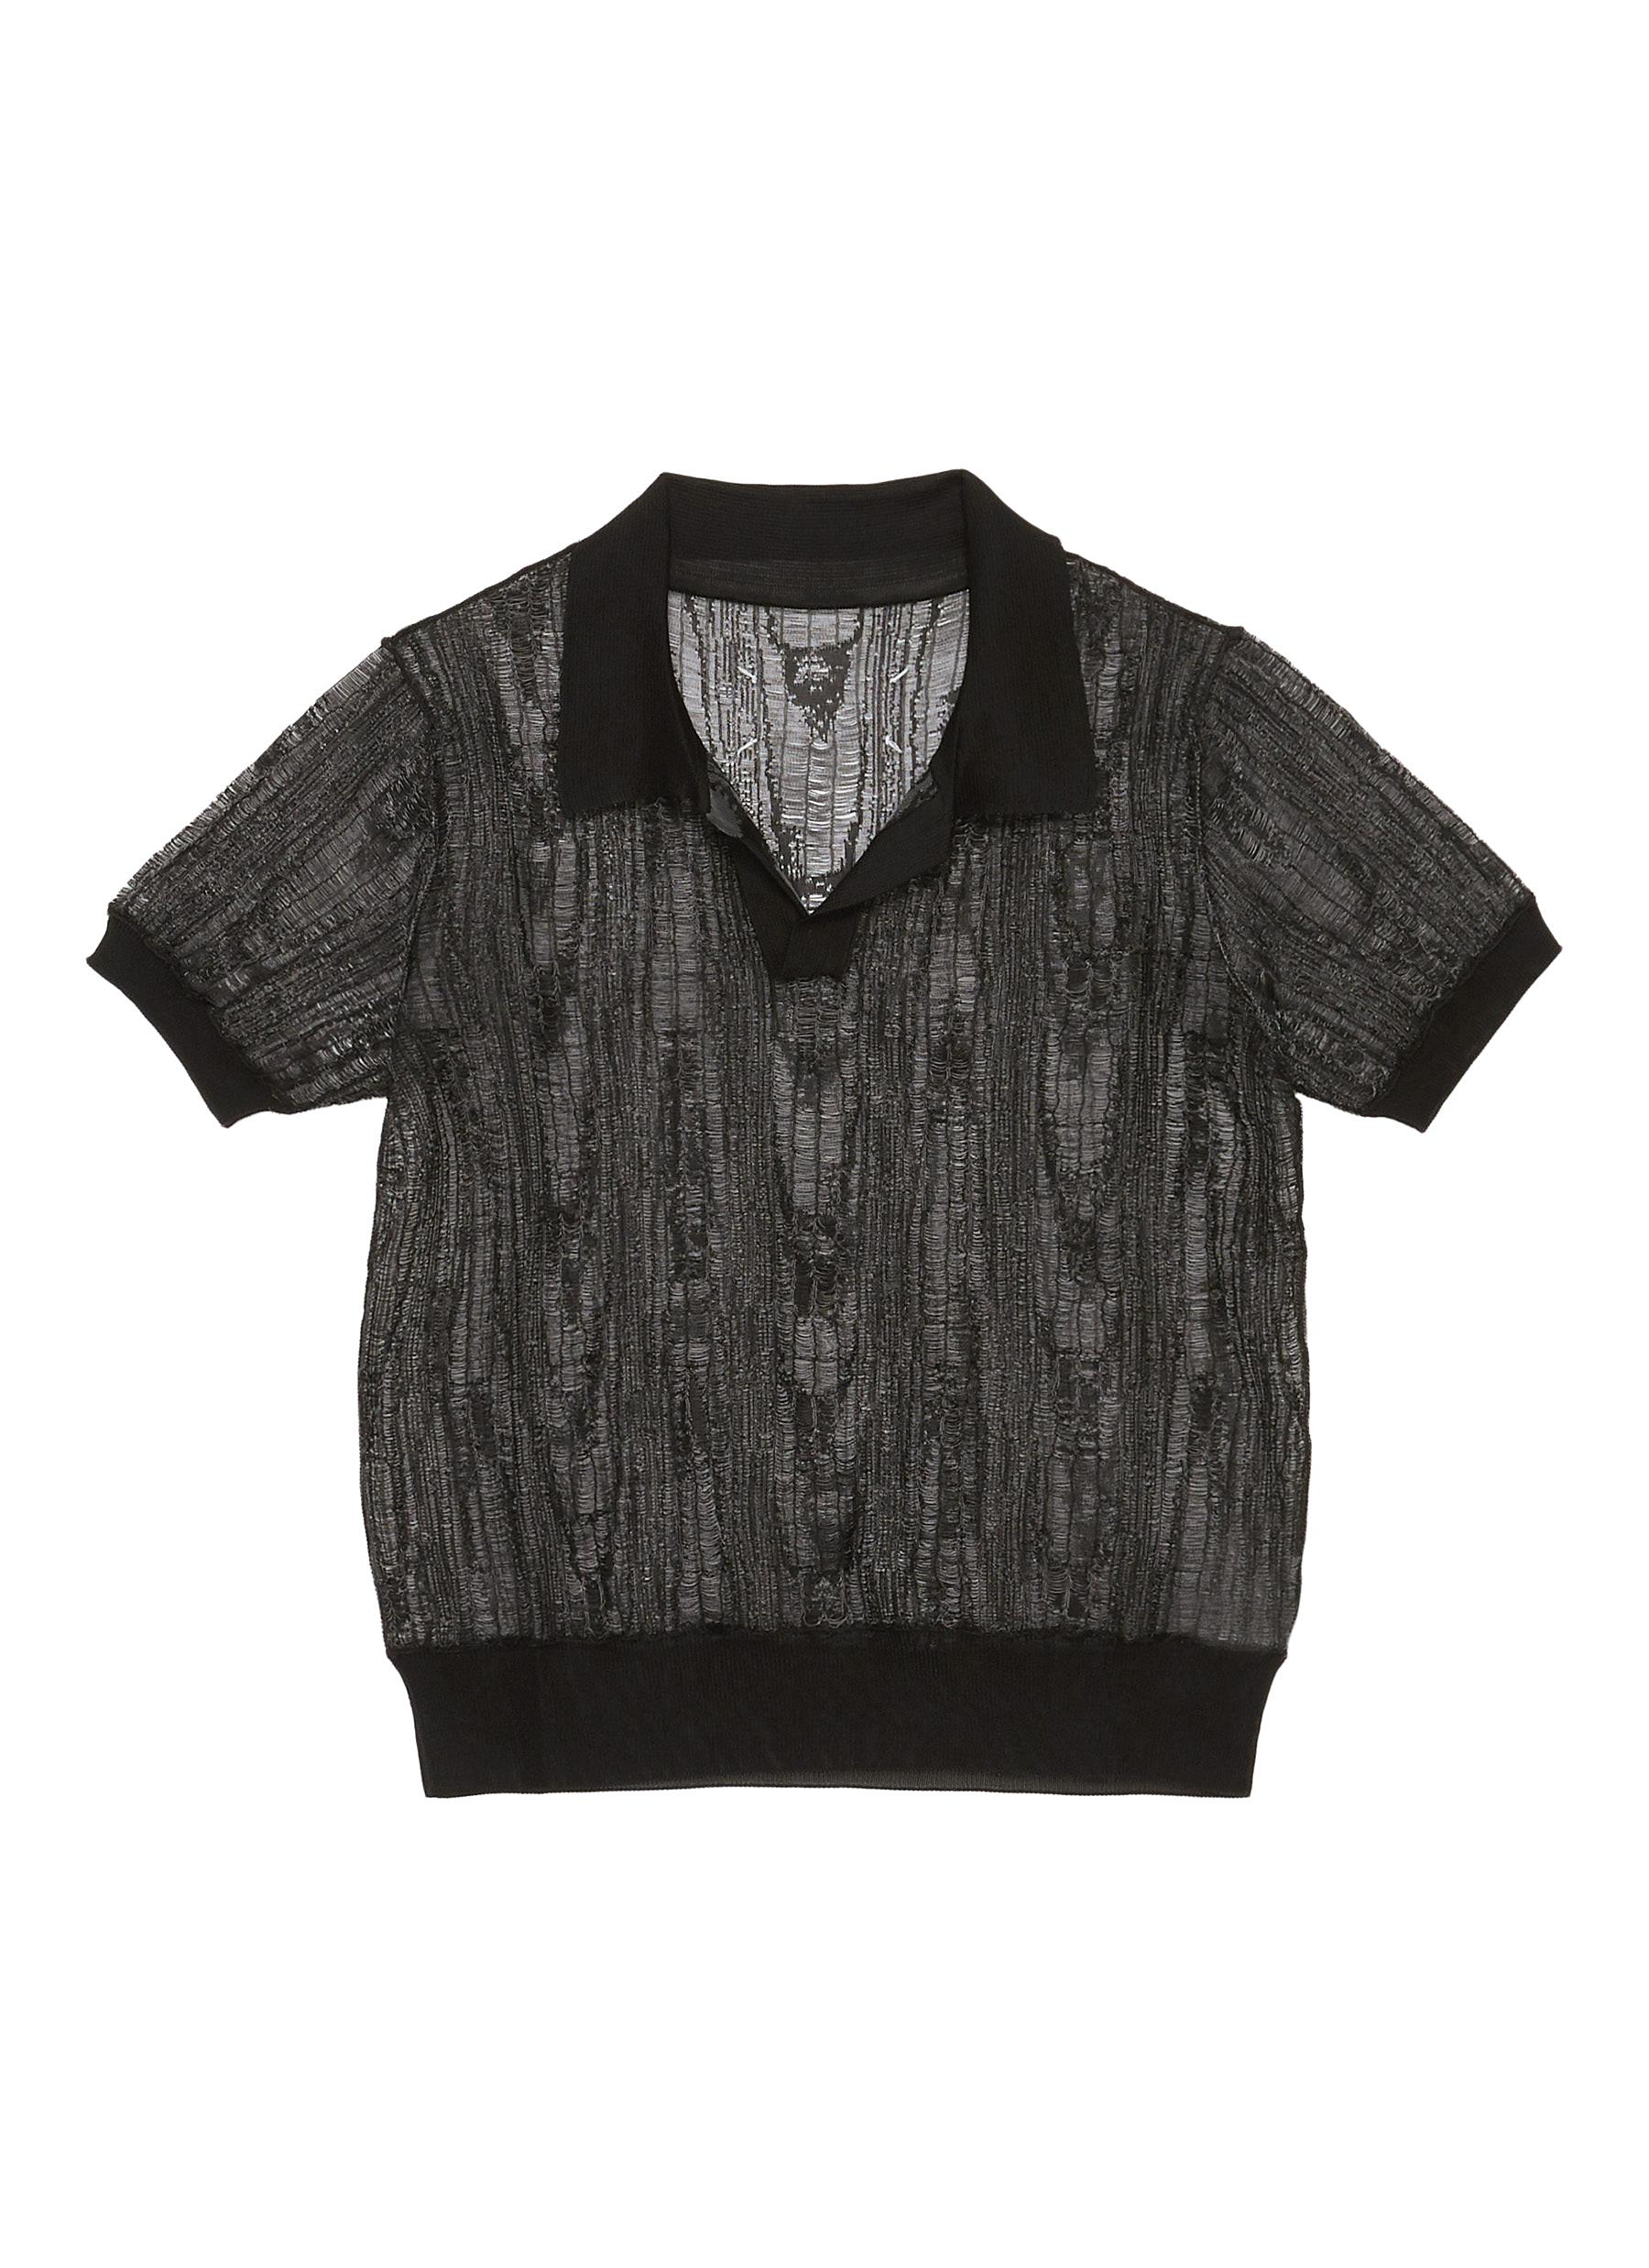 shop Maison Margiela Distress Effect Sheer Top online